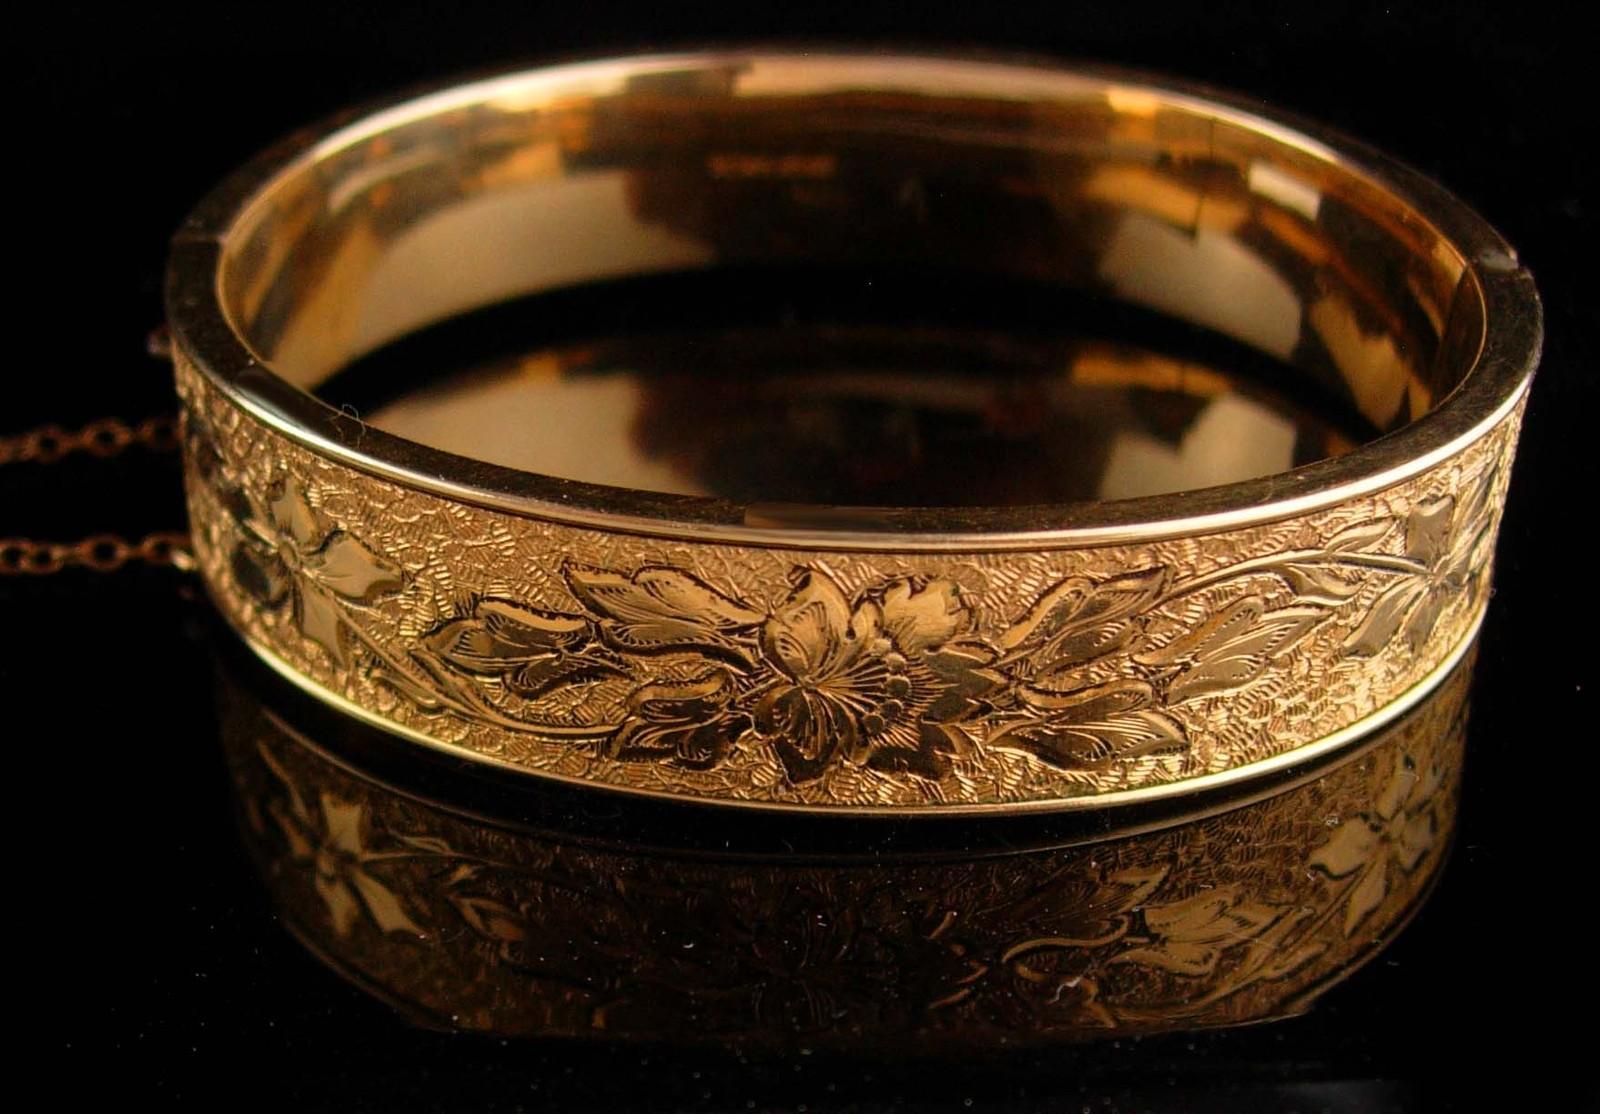 1900s Victorian bracelet - antique gold filled bangle - Antique bracelet 12kt